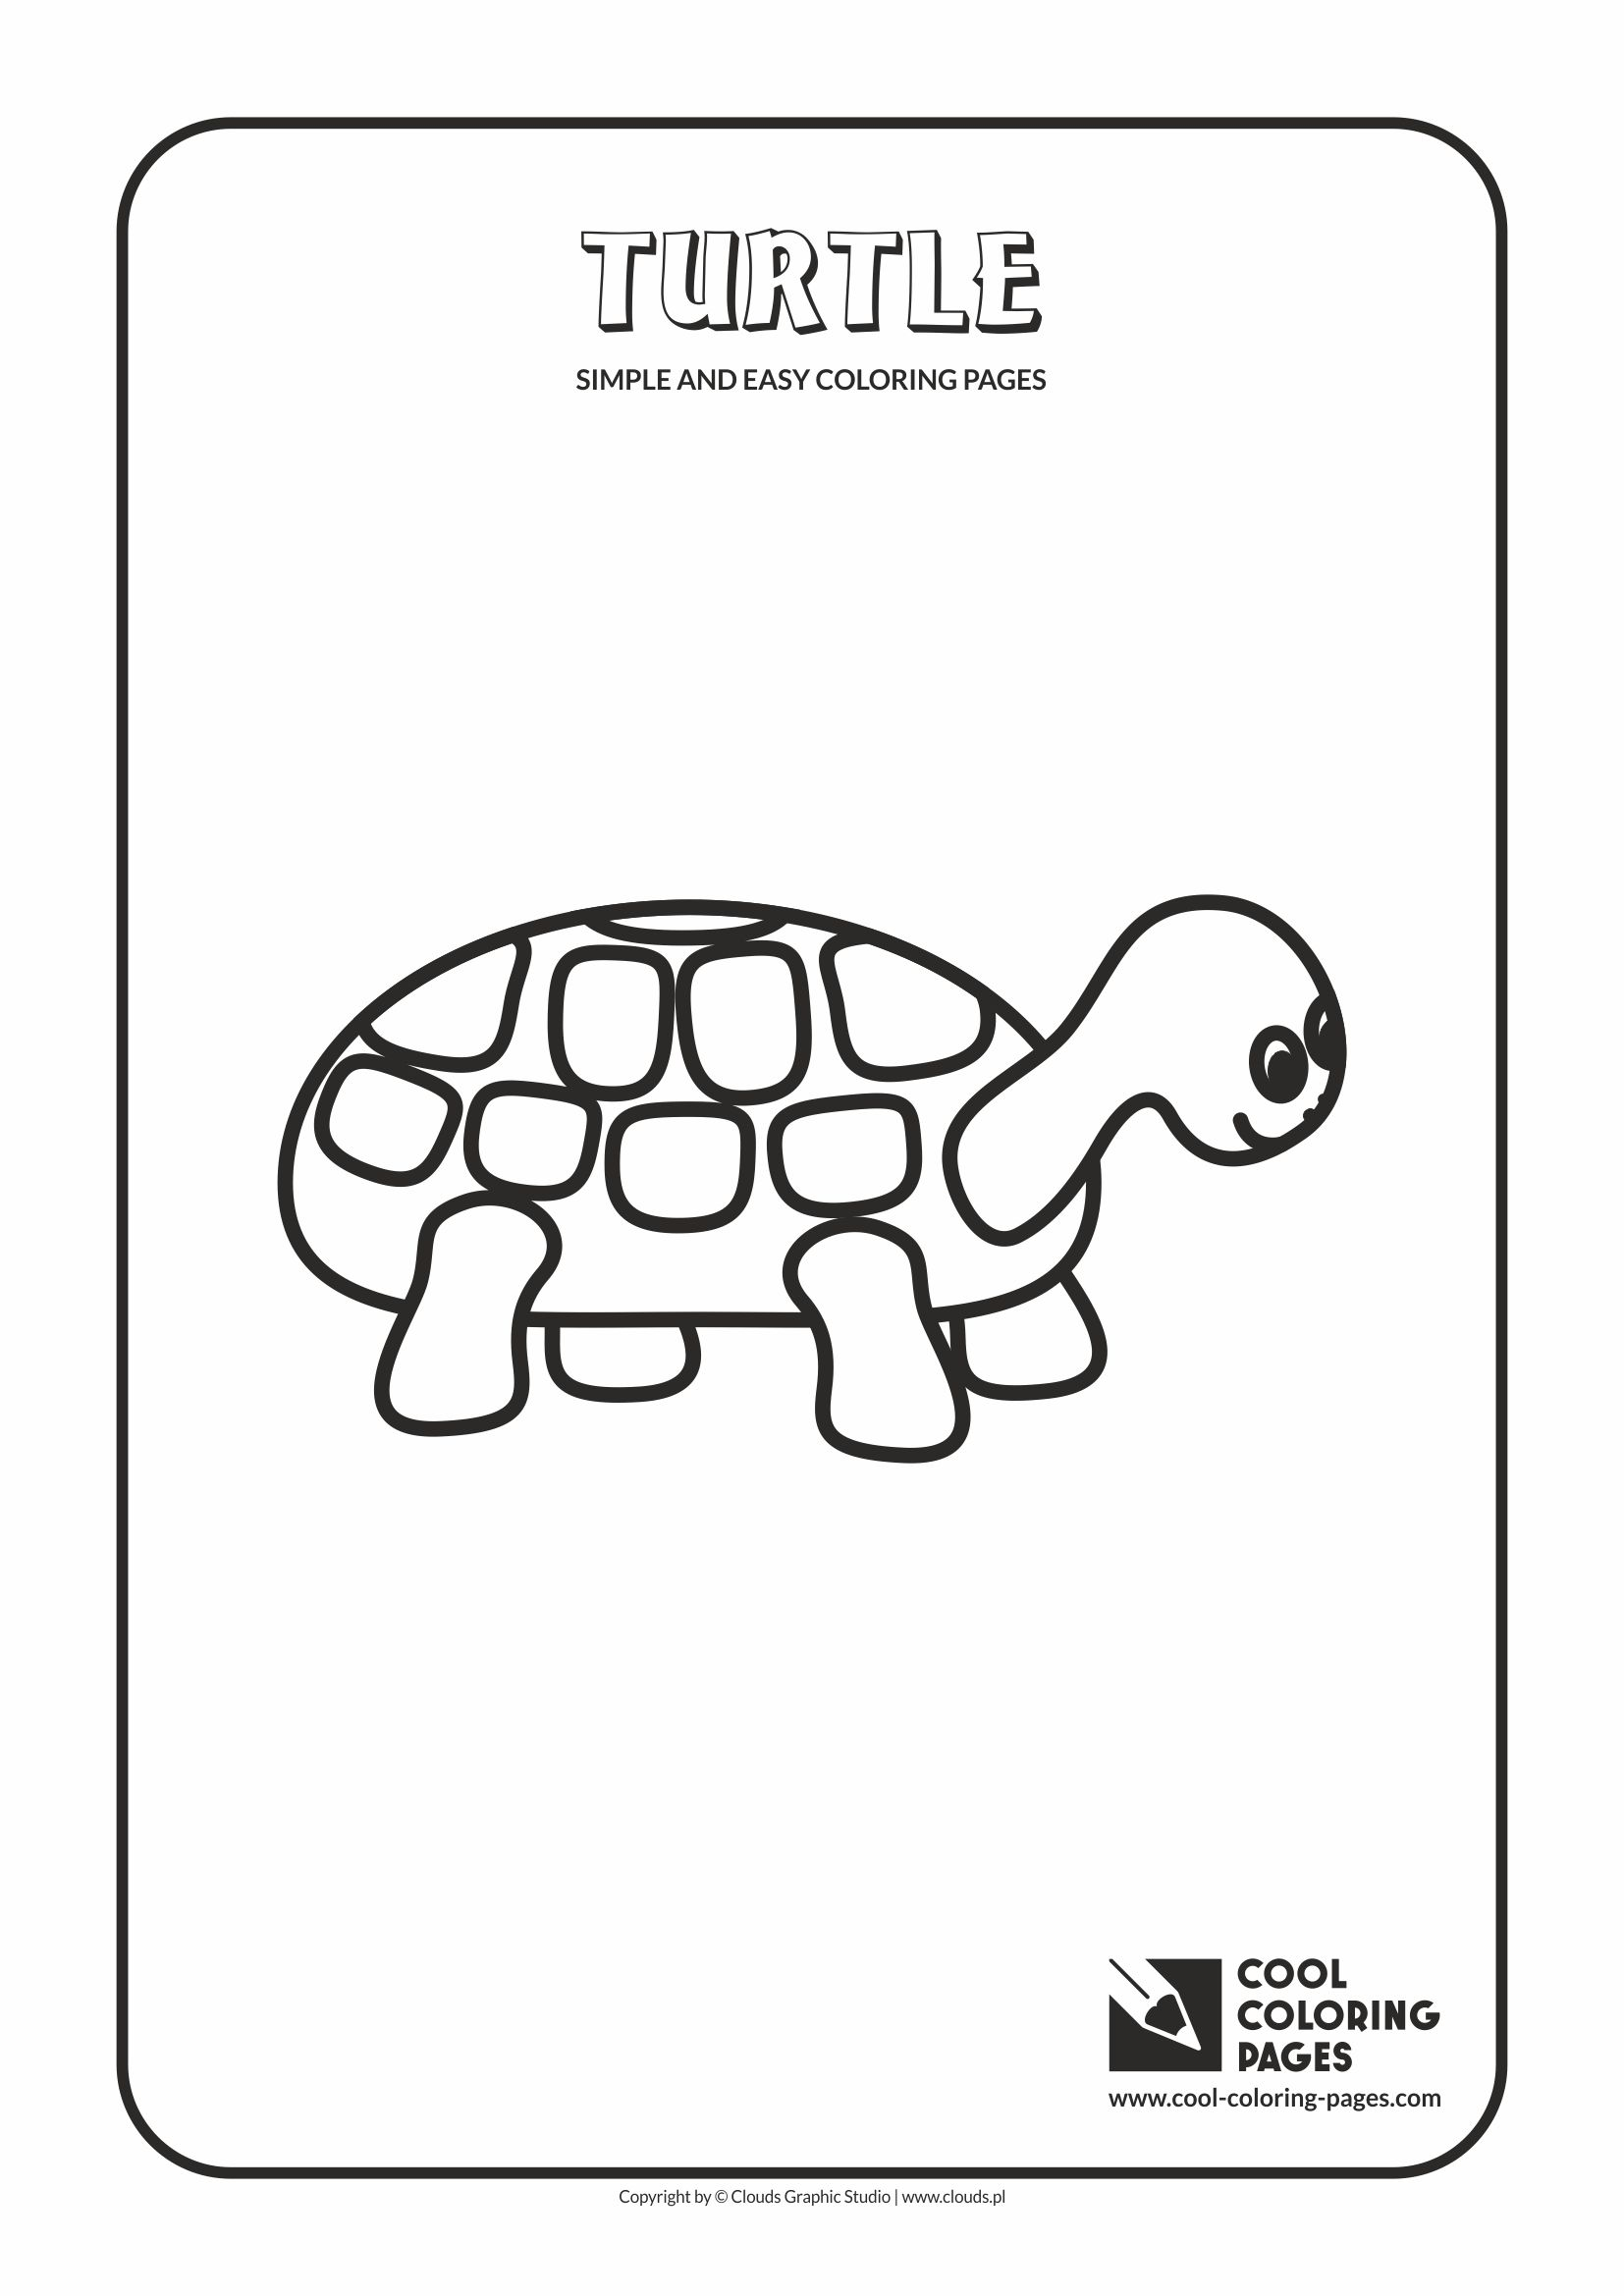 Simple and easy coloring pages for toddlers - Turtle